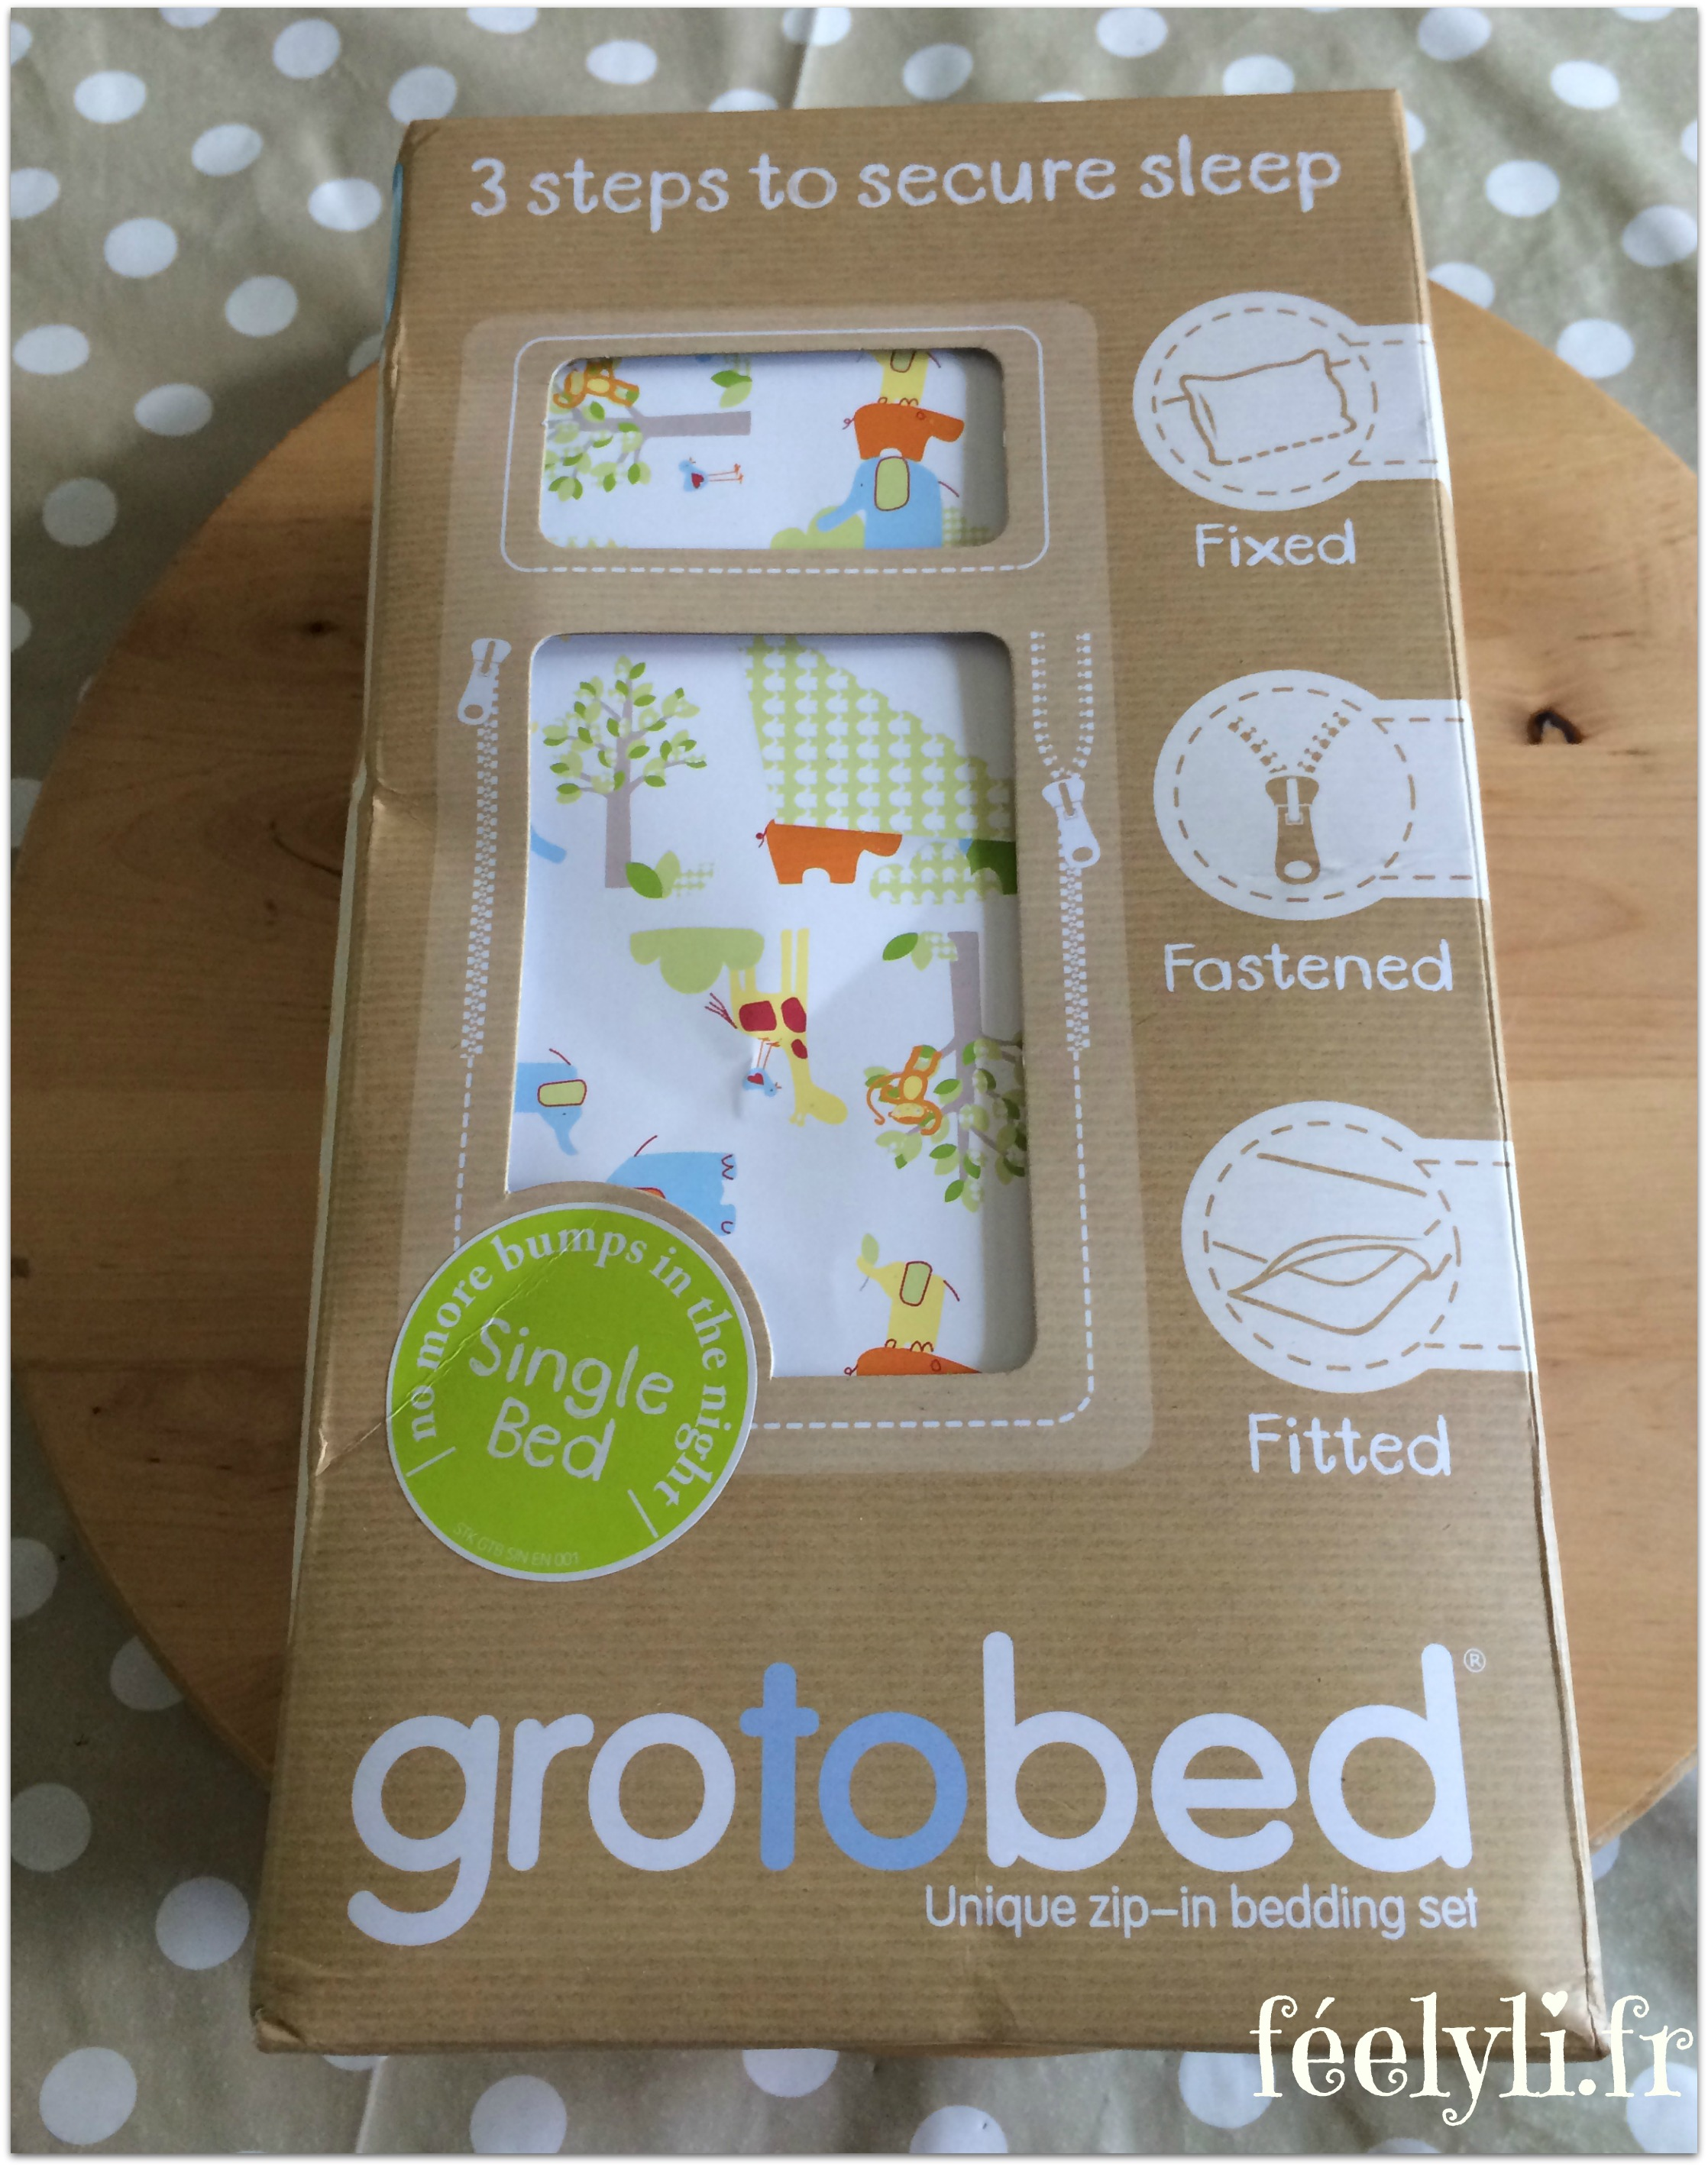 gro bed